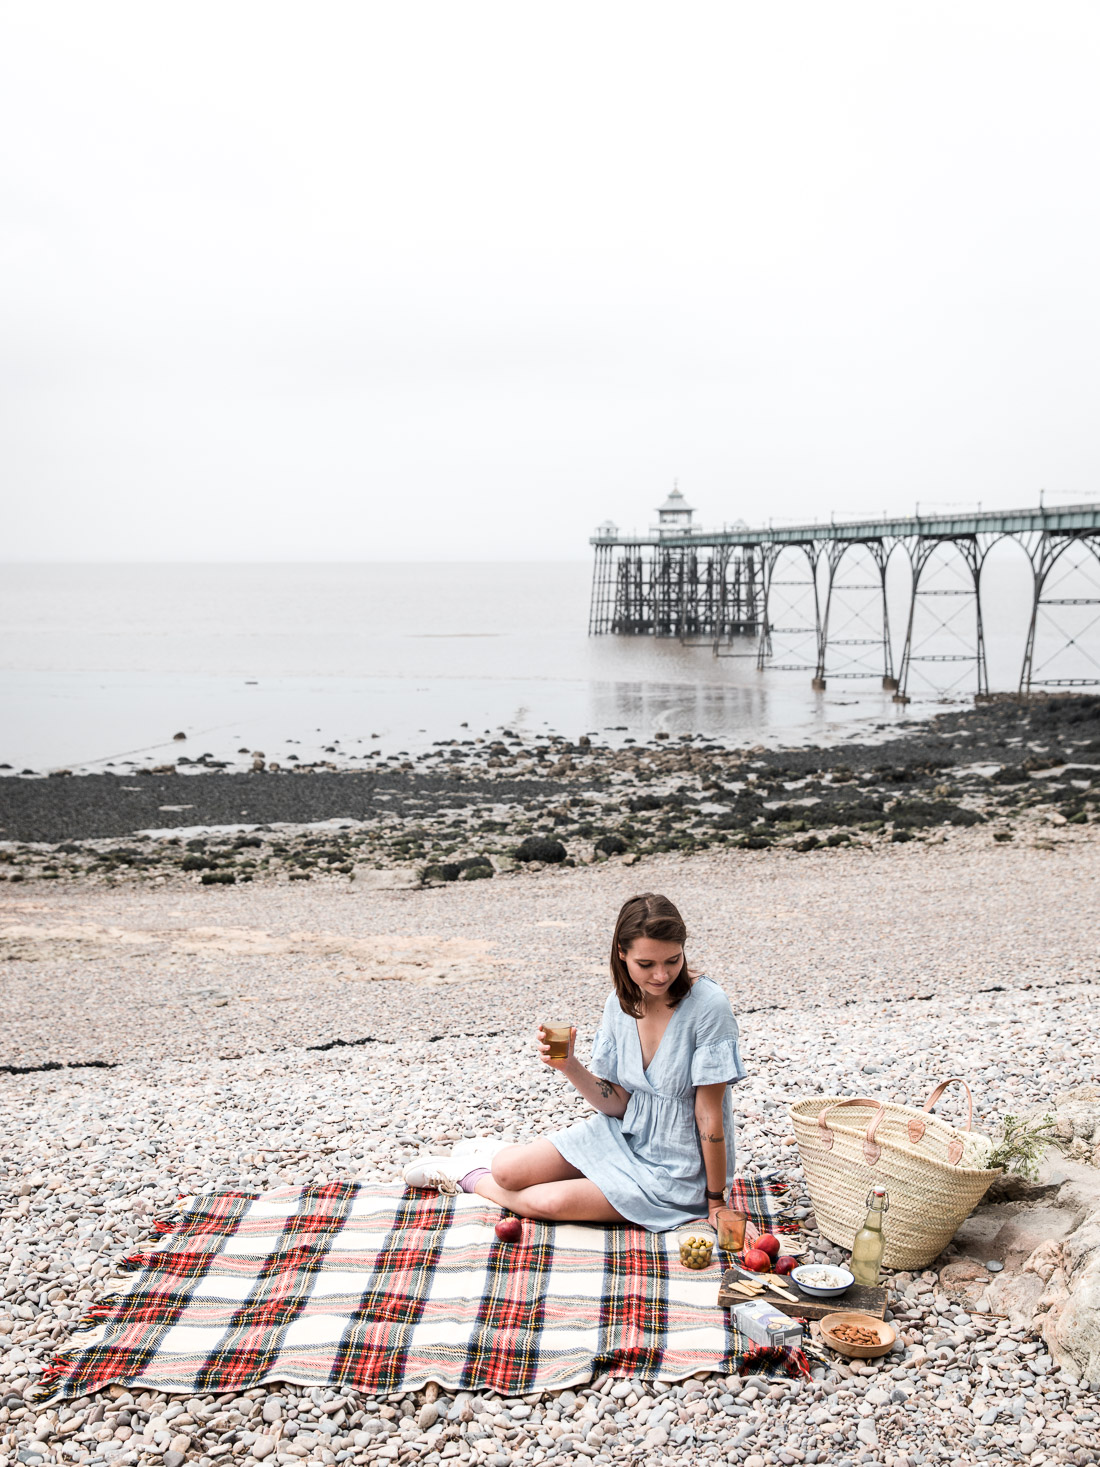 Mackerel Pate | Ardens Crackers Clevedon Pier British Beach Seaside Picnic